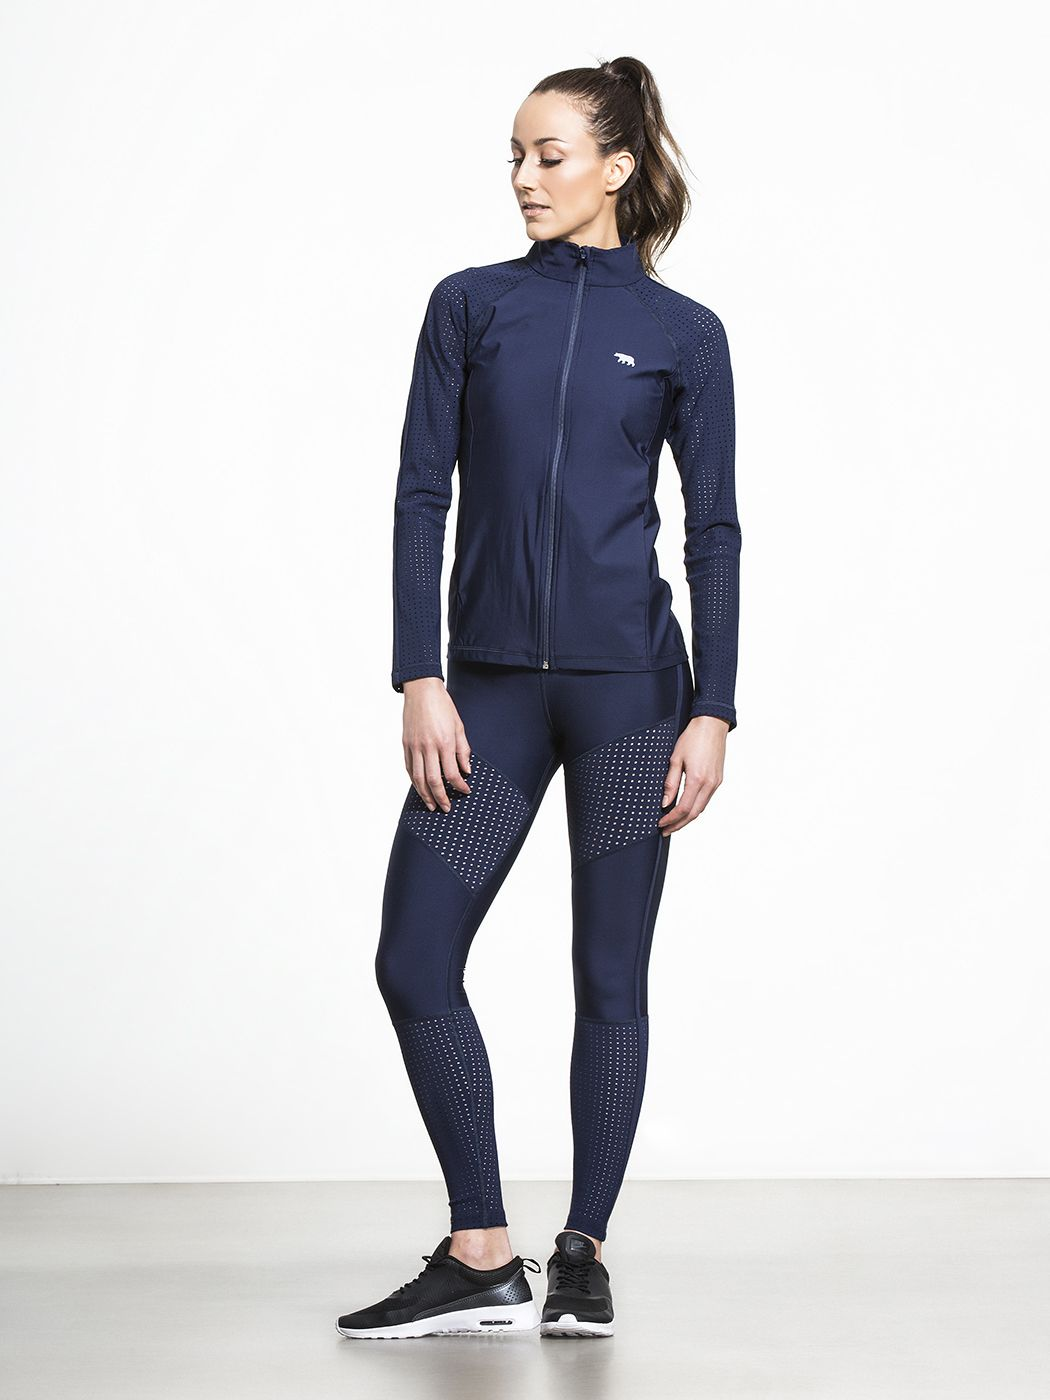 League of Her Own Cardio Zip Jacket by RUNNING BARE in Indigo Perforated